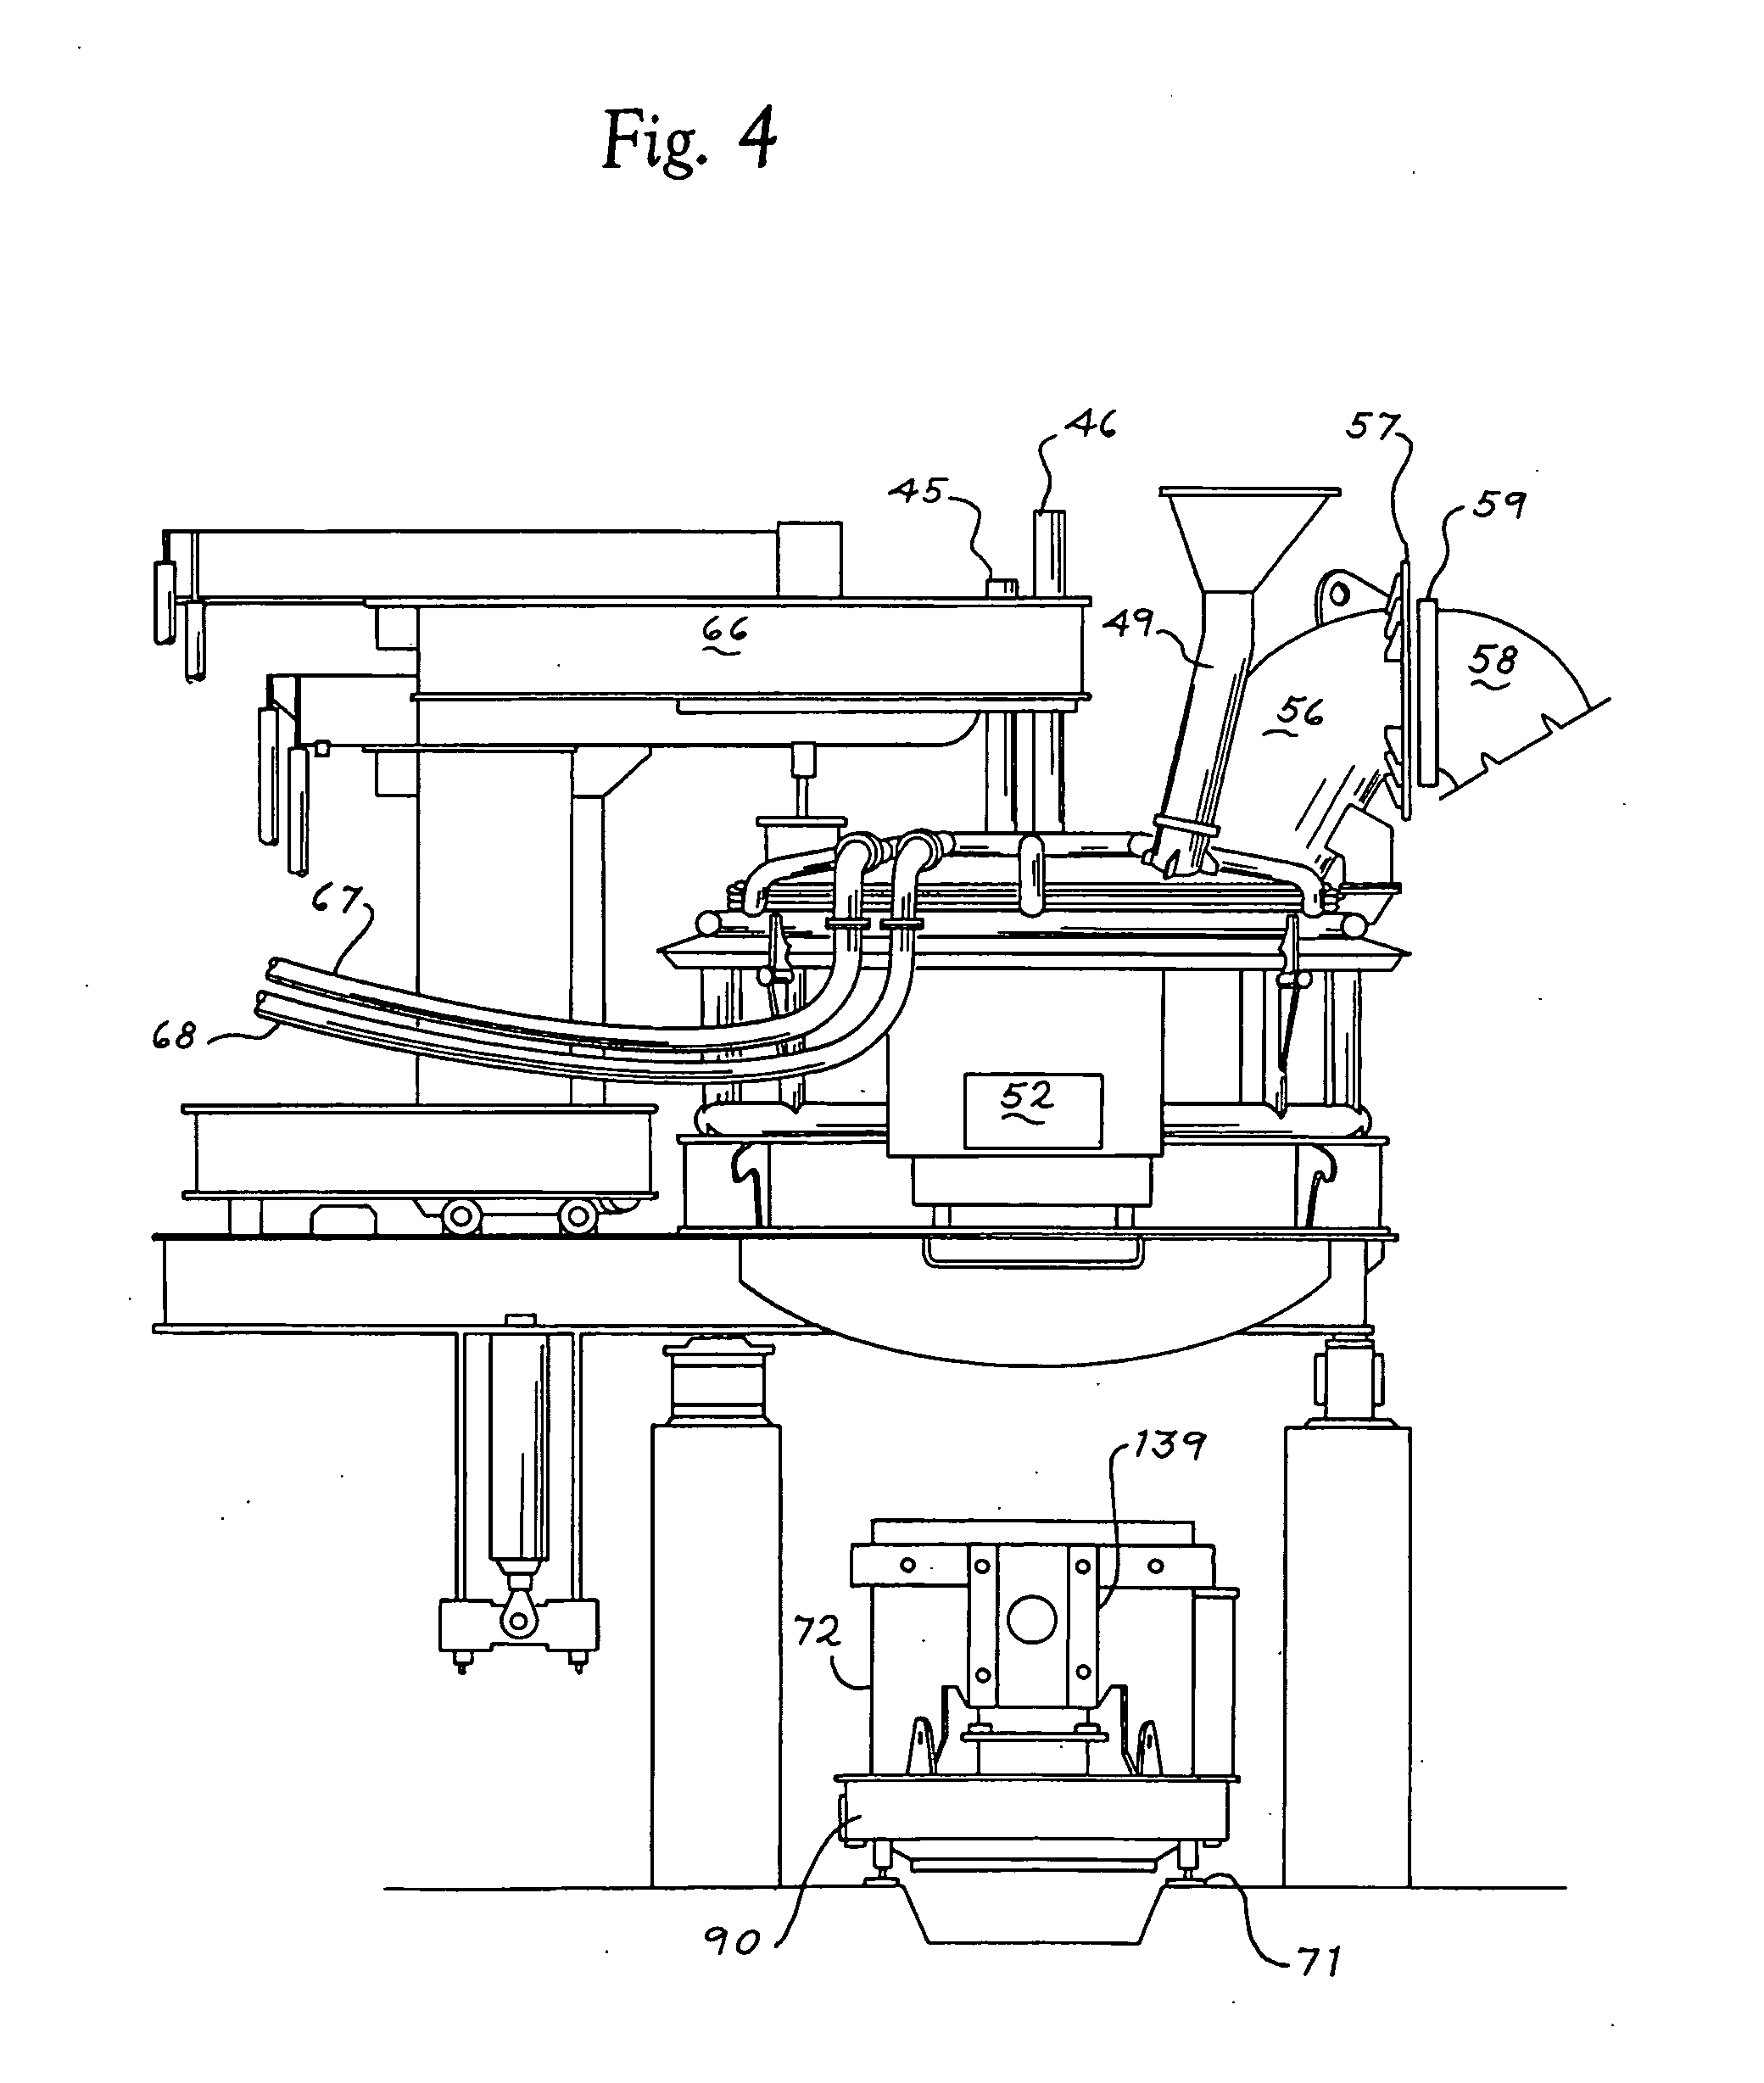 Electric Arc Furnace Schematic